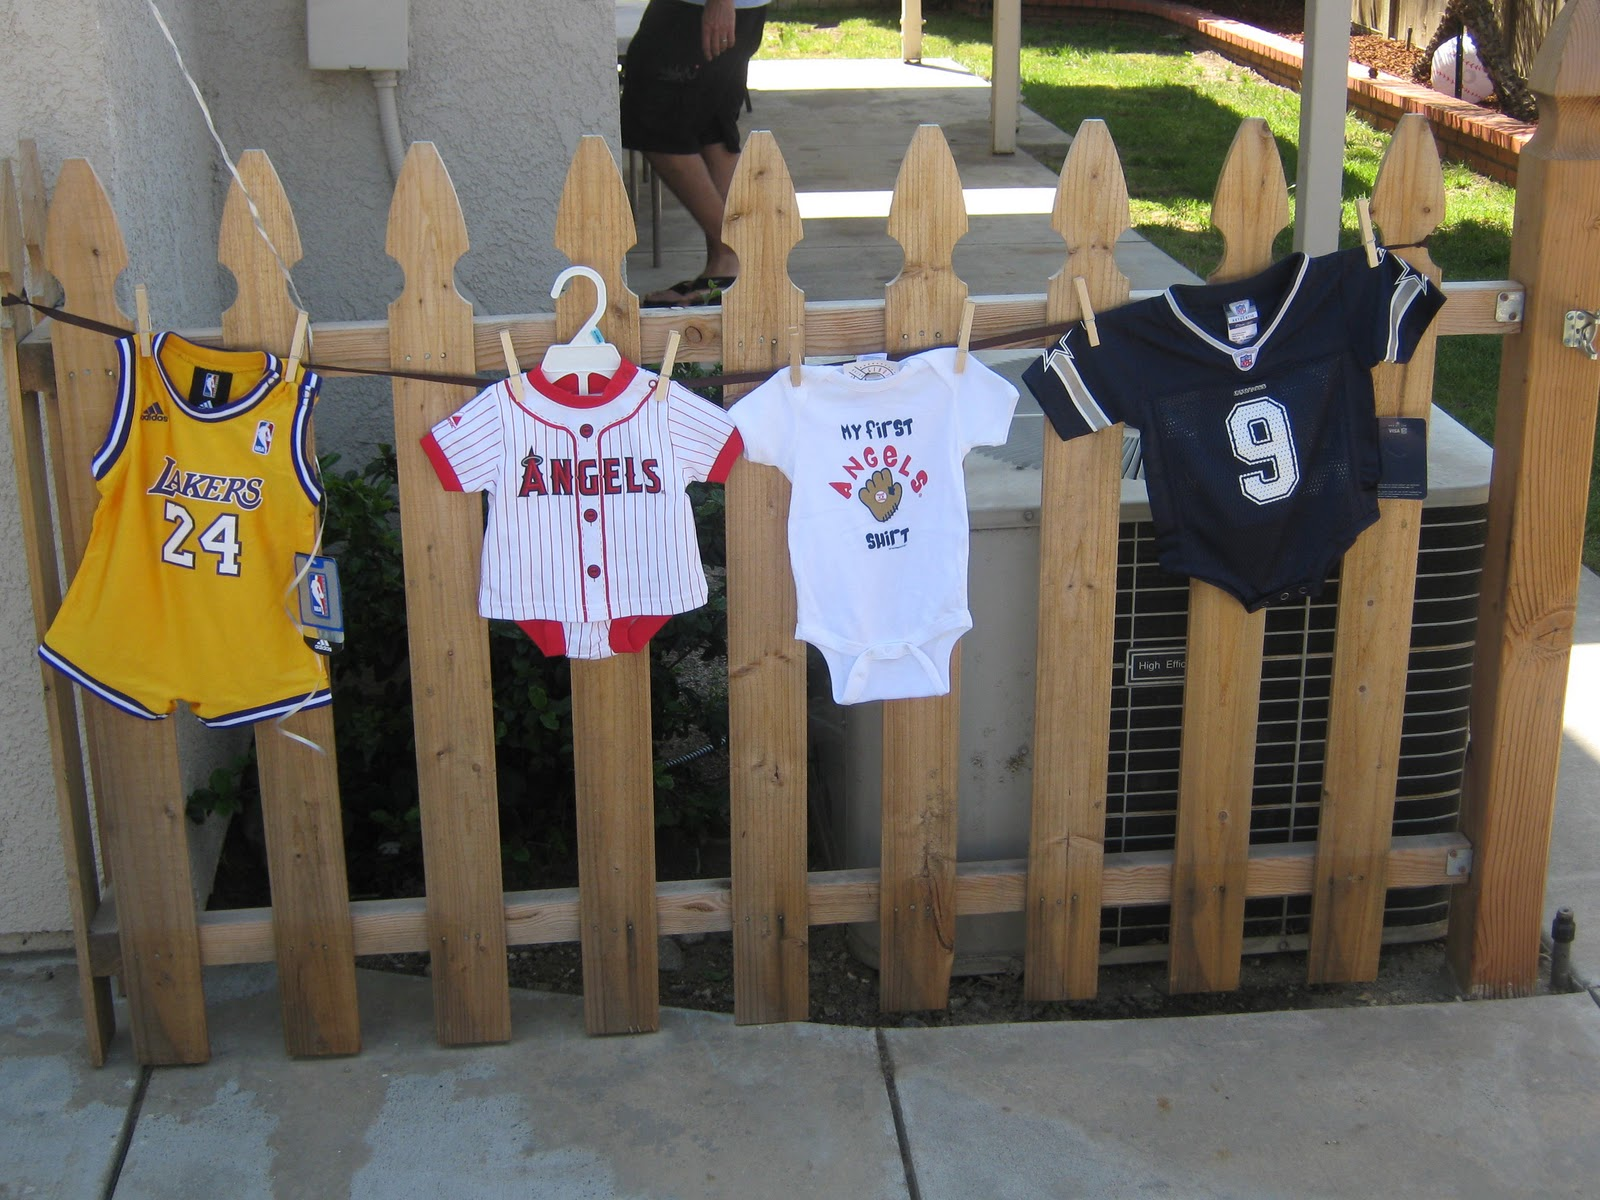 clothesline with baby clothes of the favorite sports teams of the